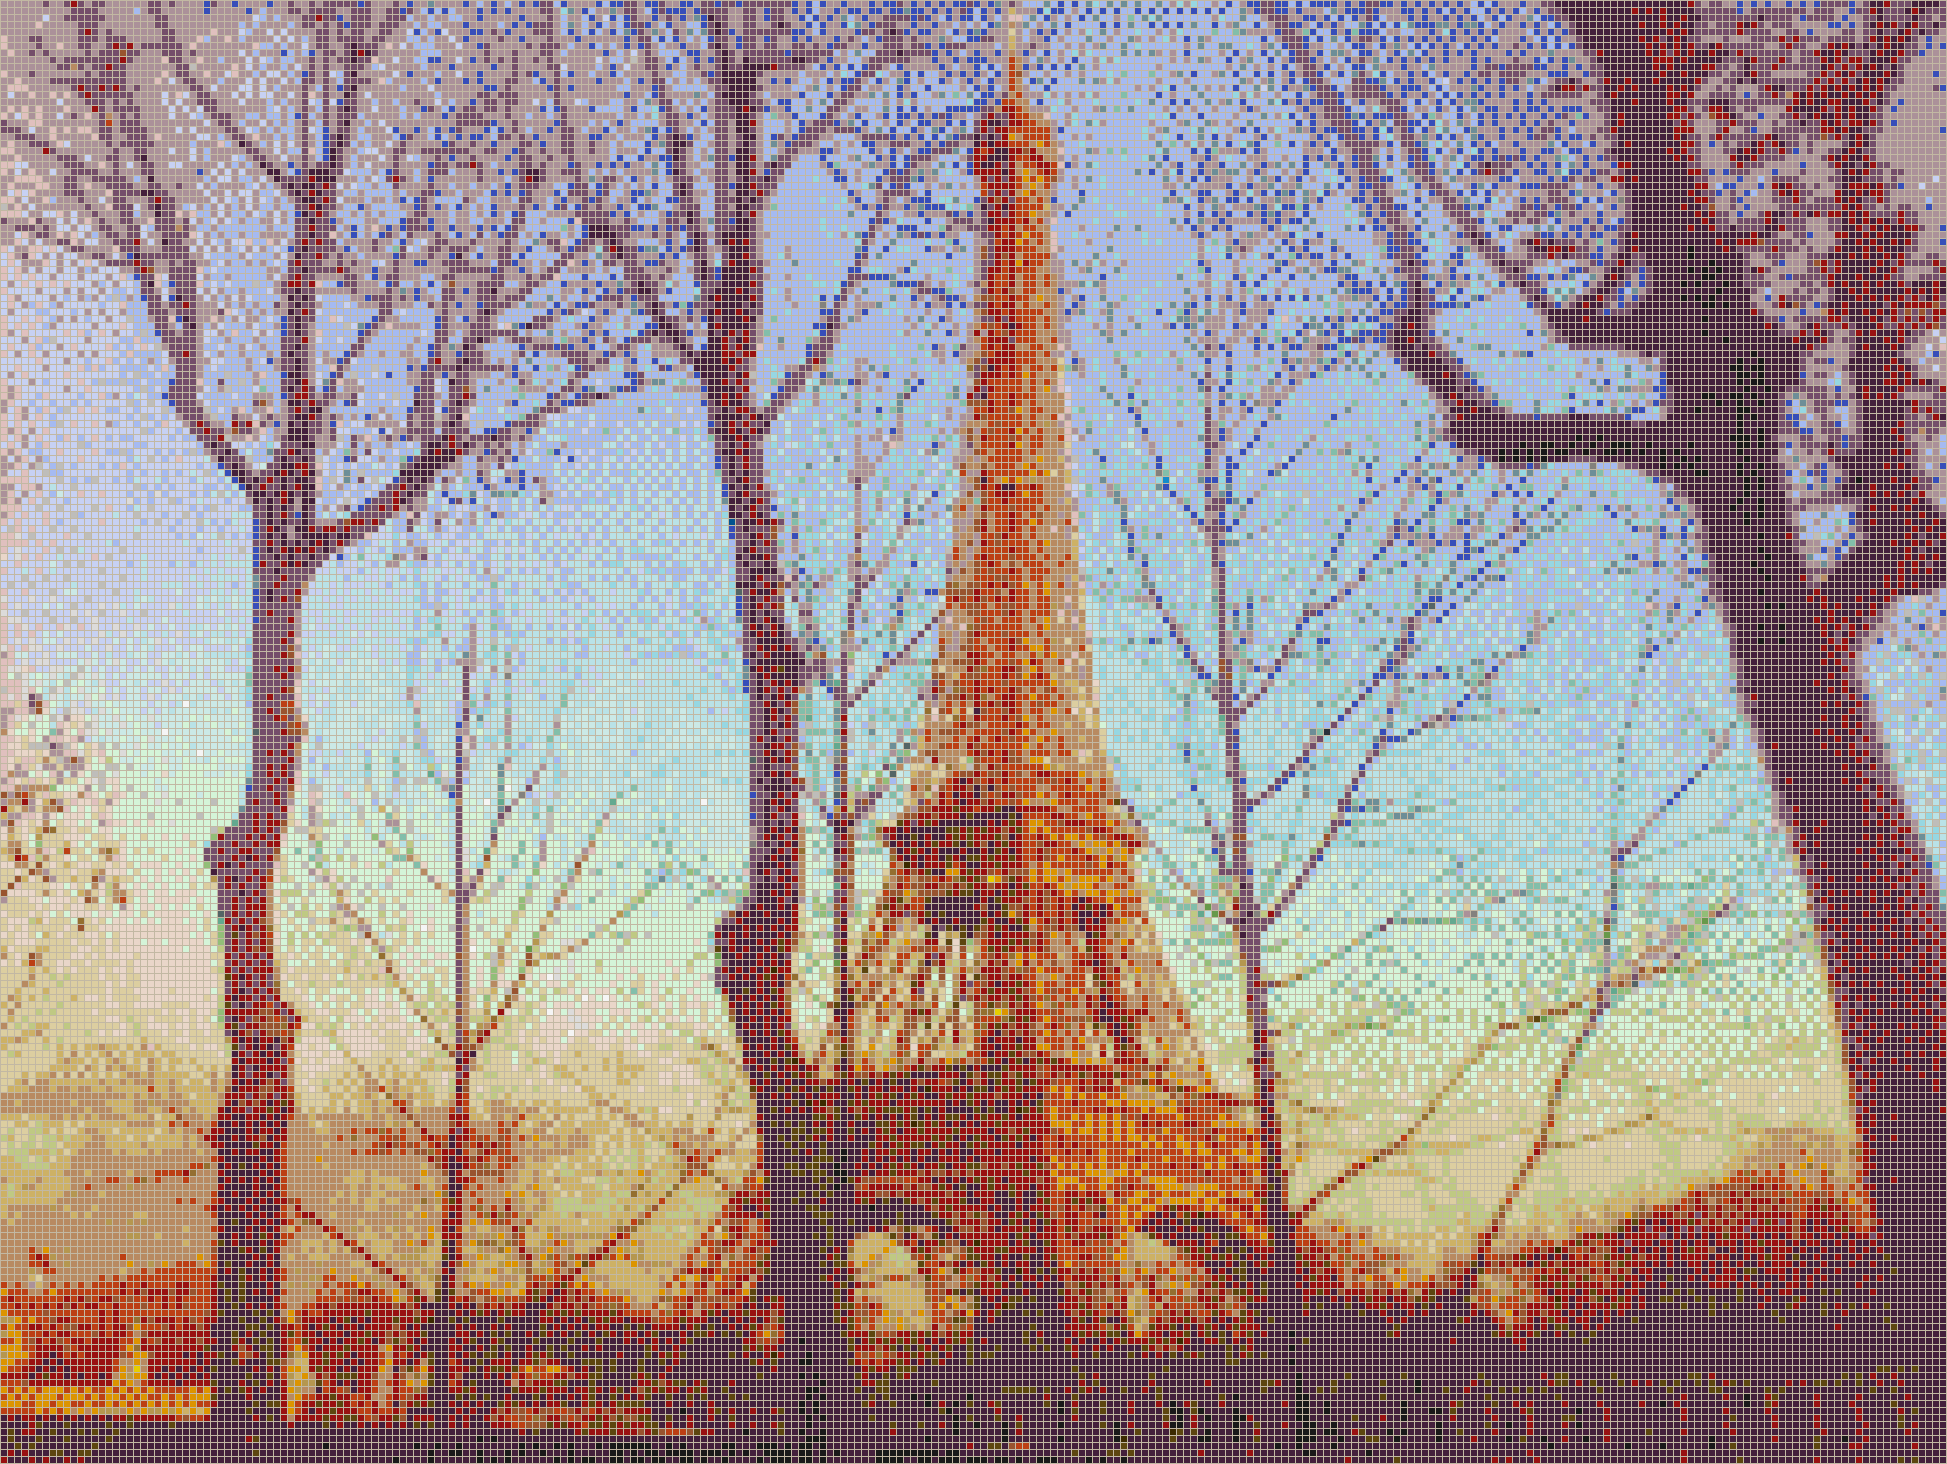 Eiffel Sunset - Mosaic Tile Picture Art